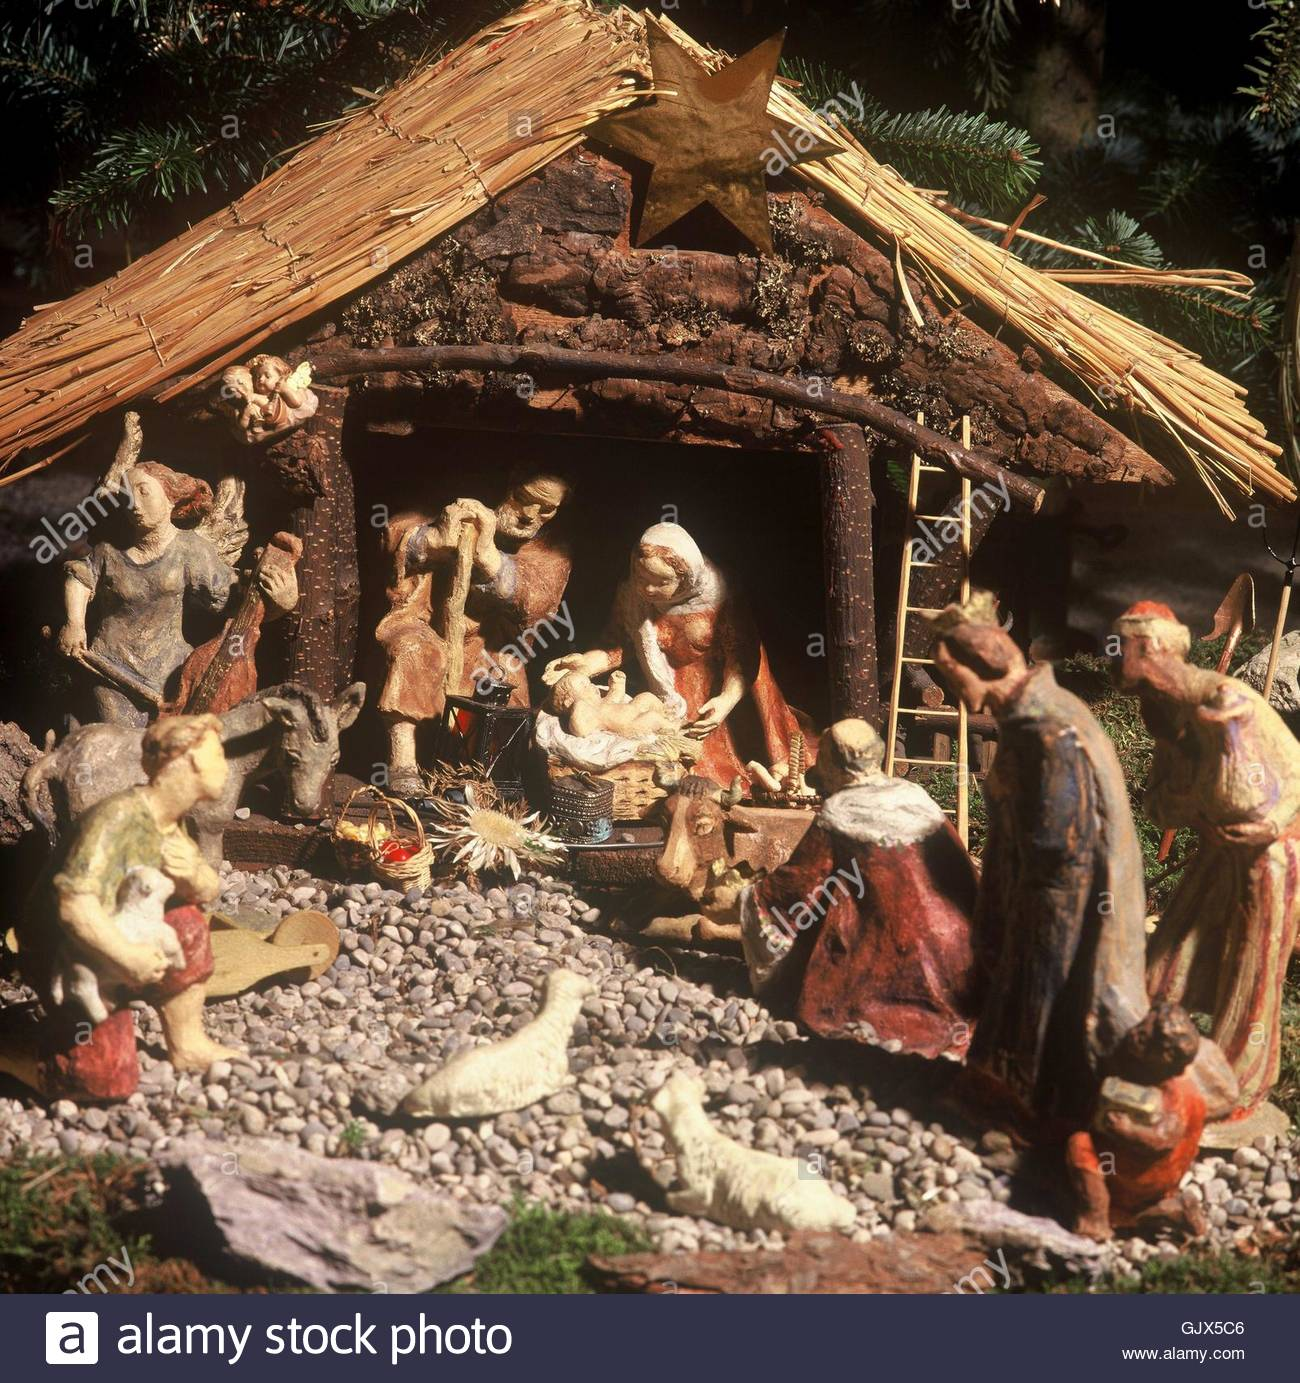 nativity scene with wooden figures Stock Photo